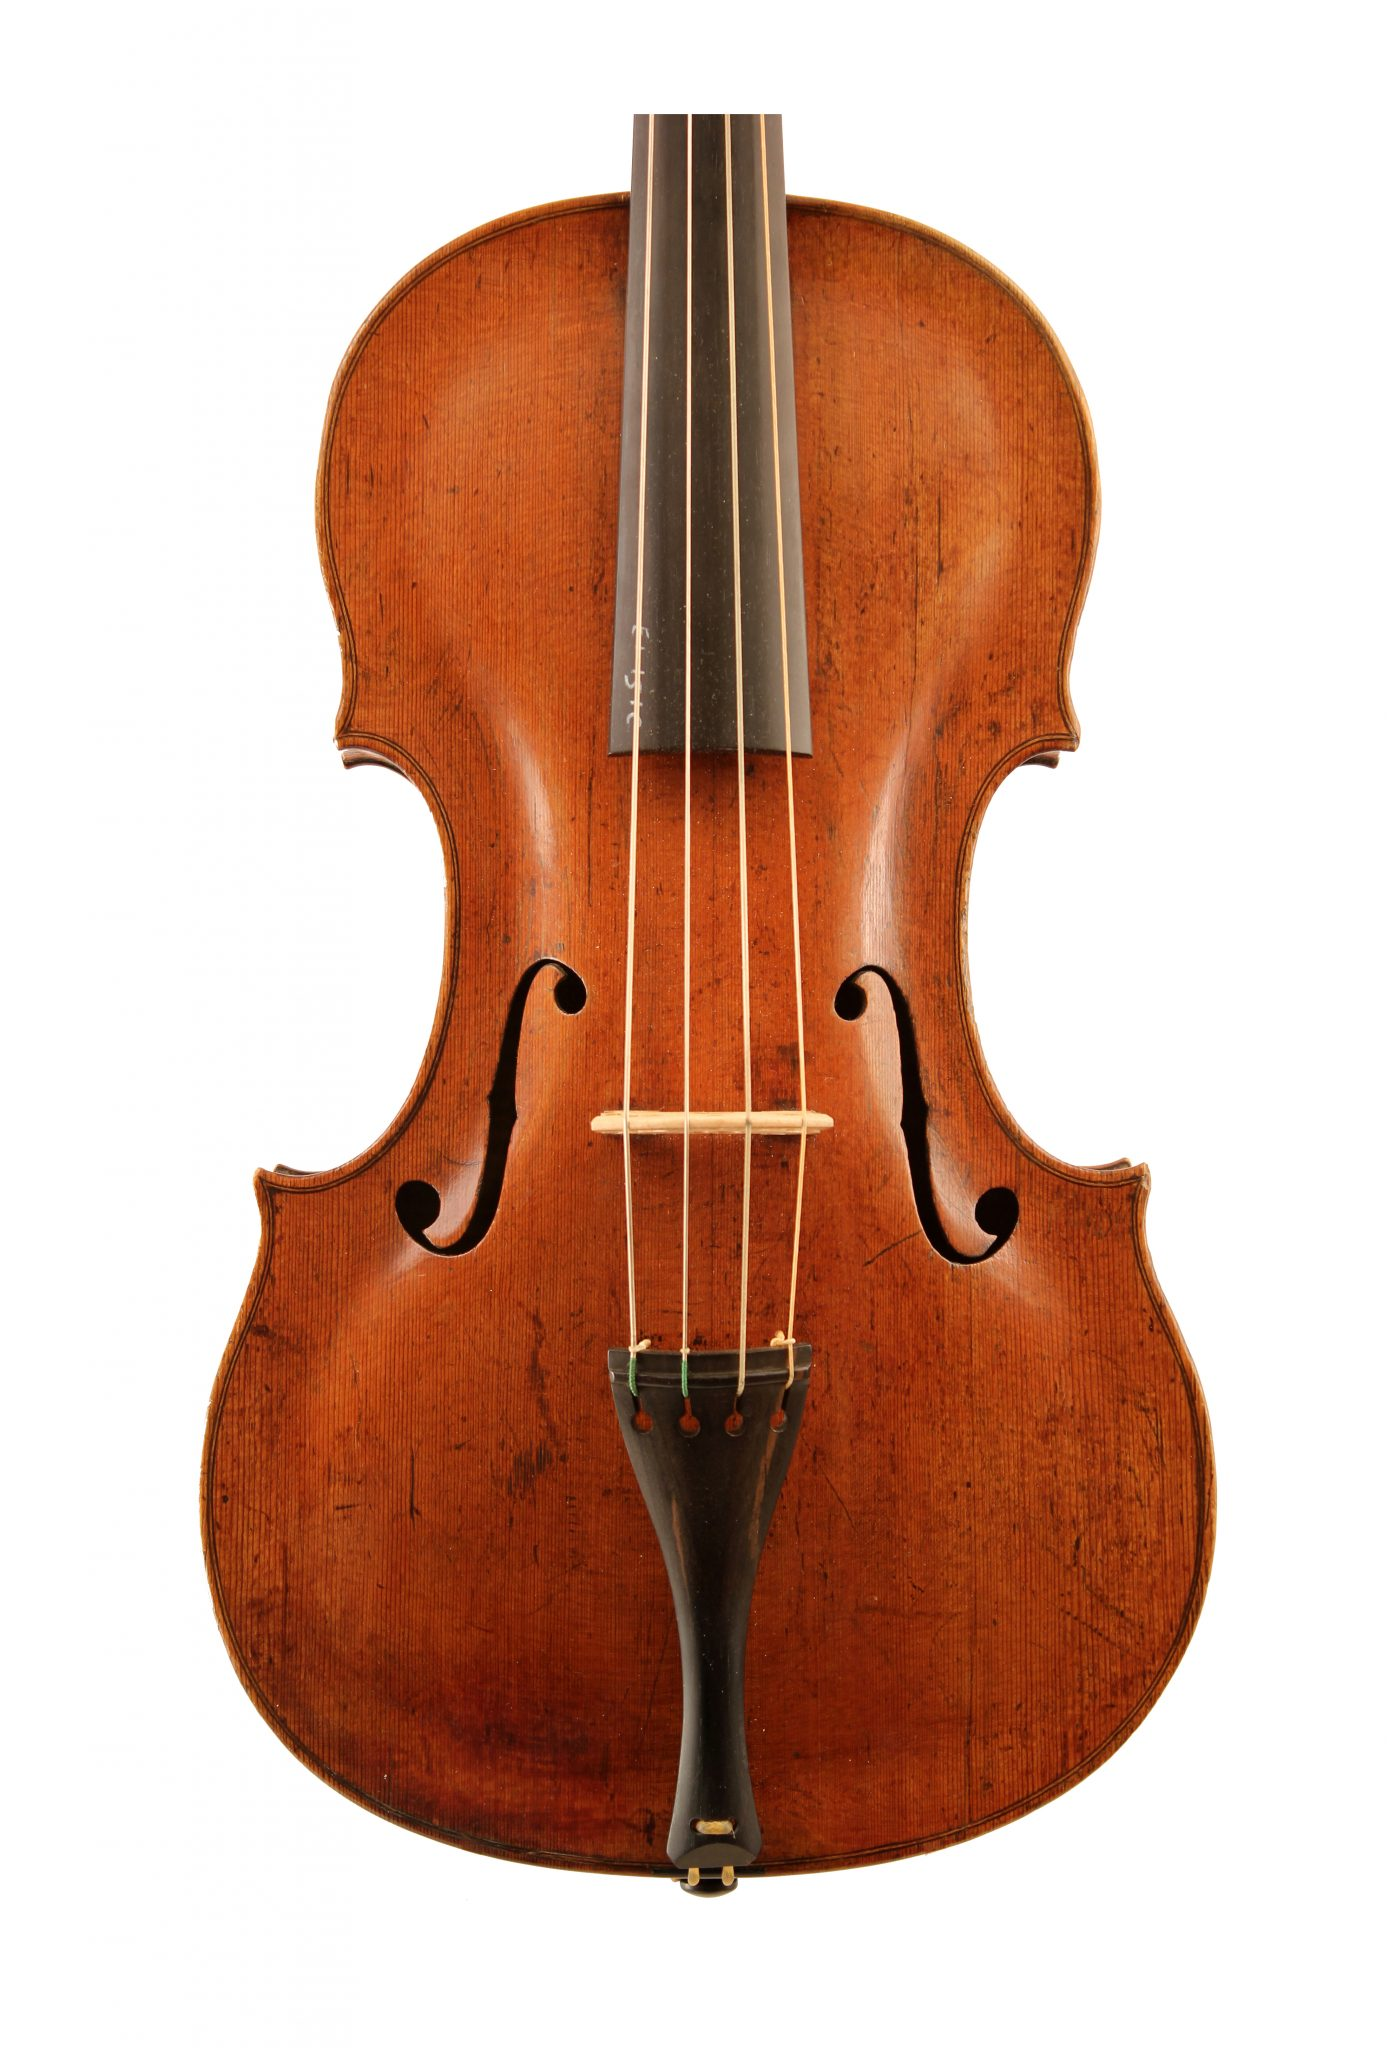 Baroque viola by Simon Voigt 1736 for sale at Bridgewood and Neitzert London